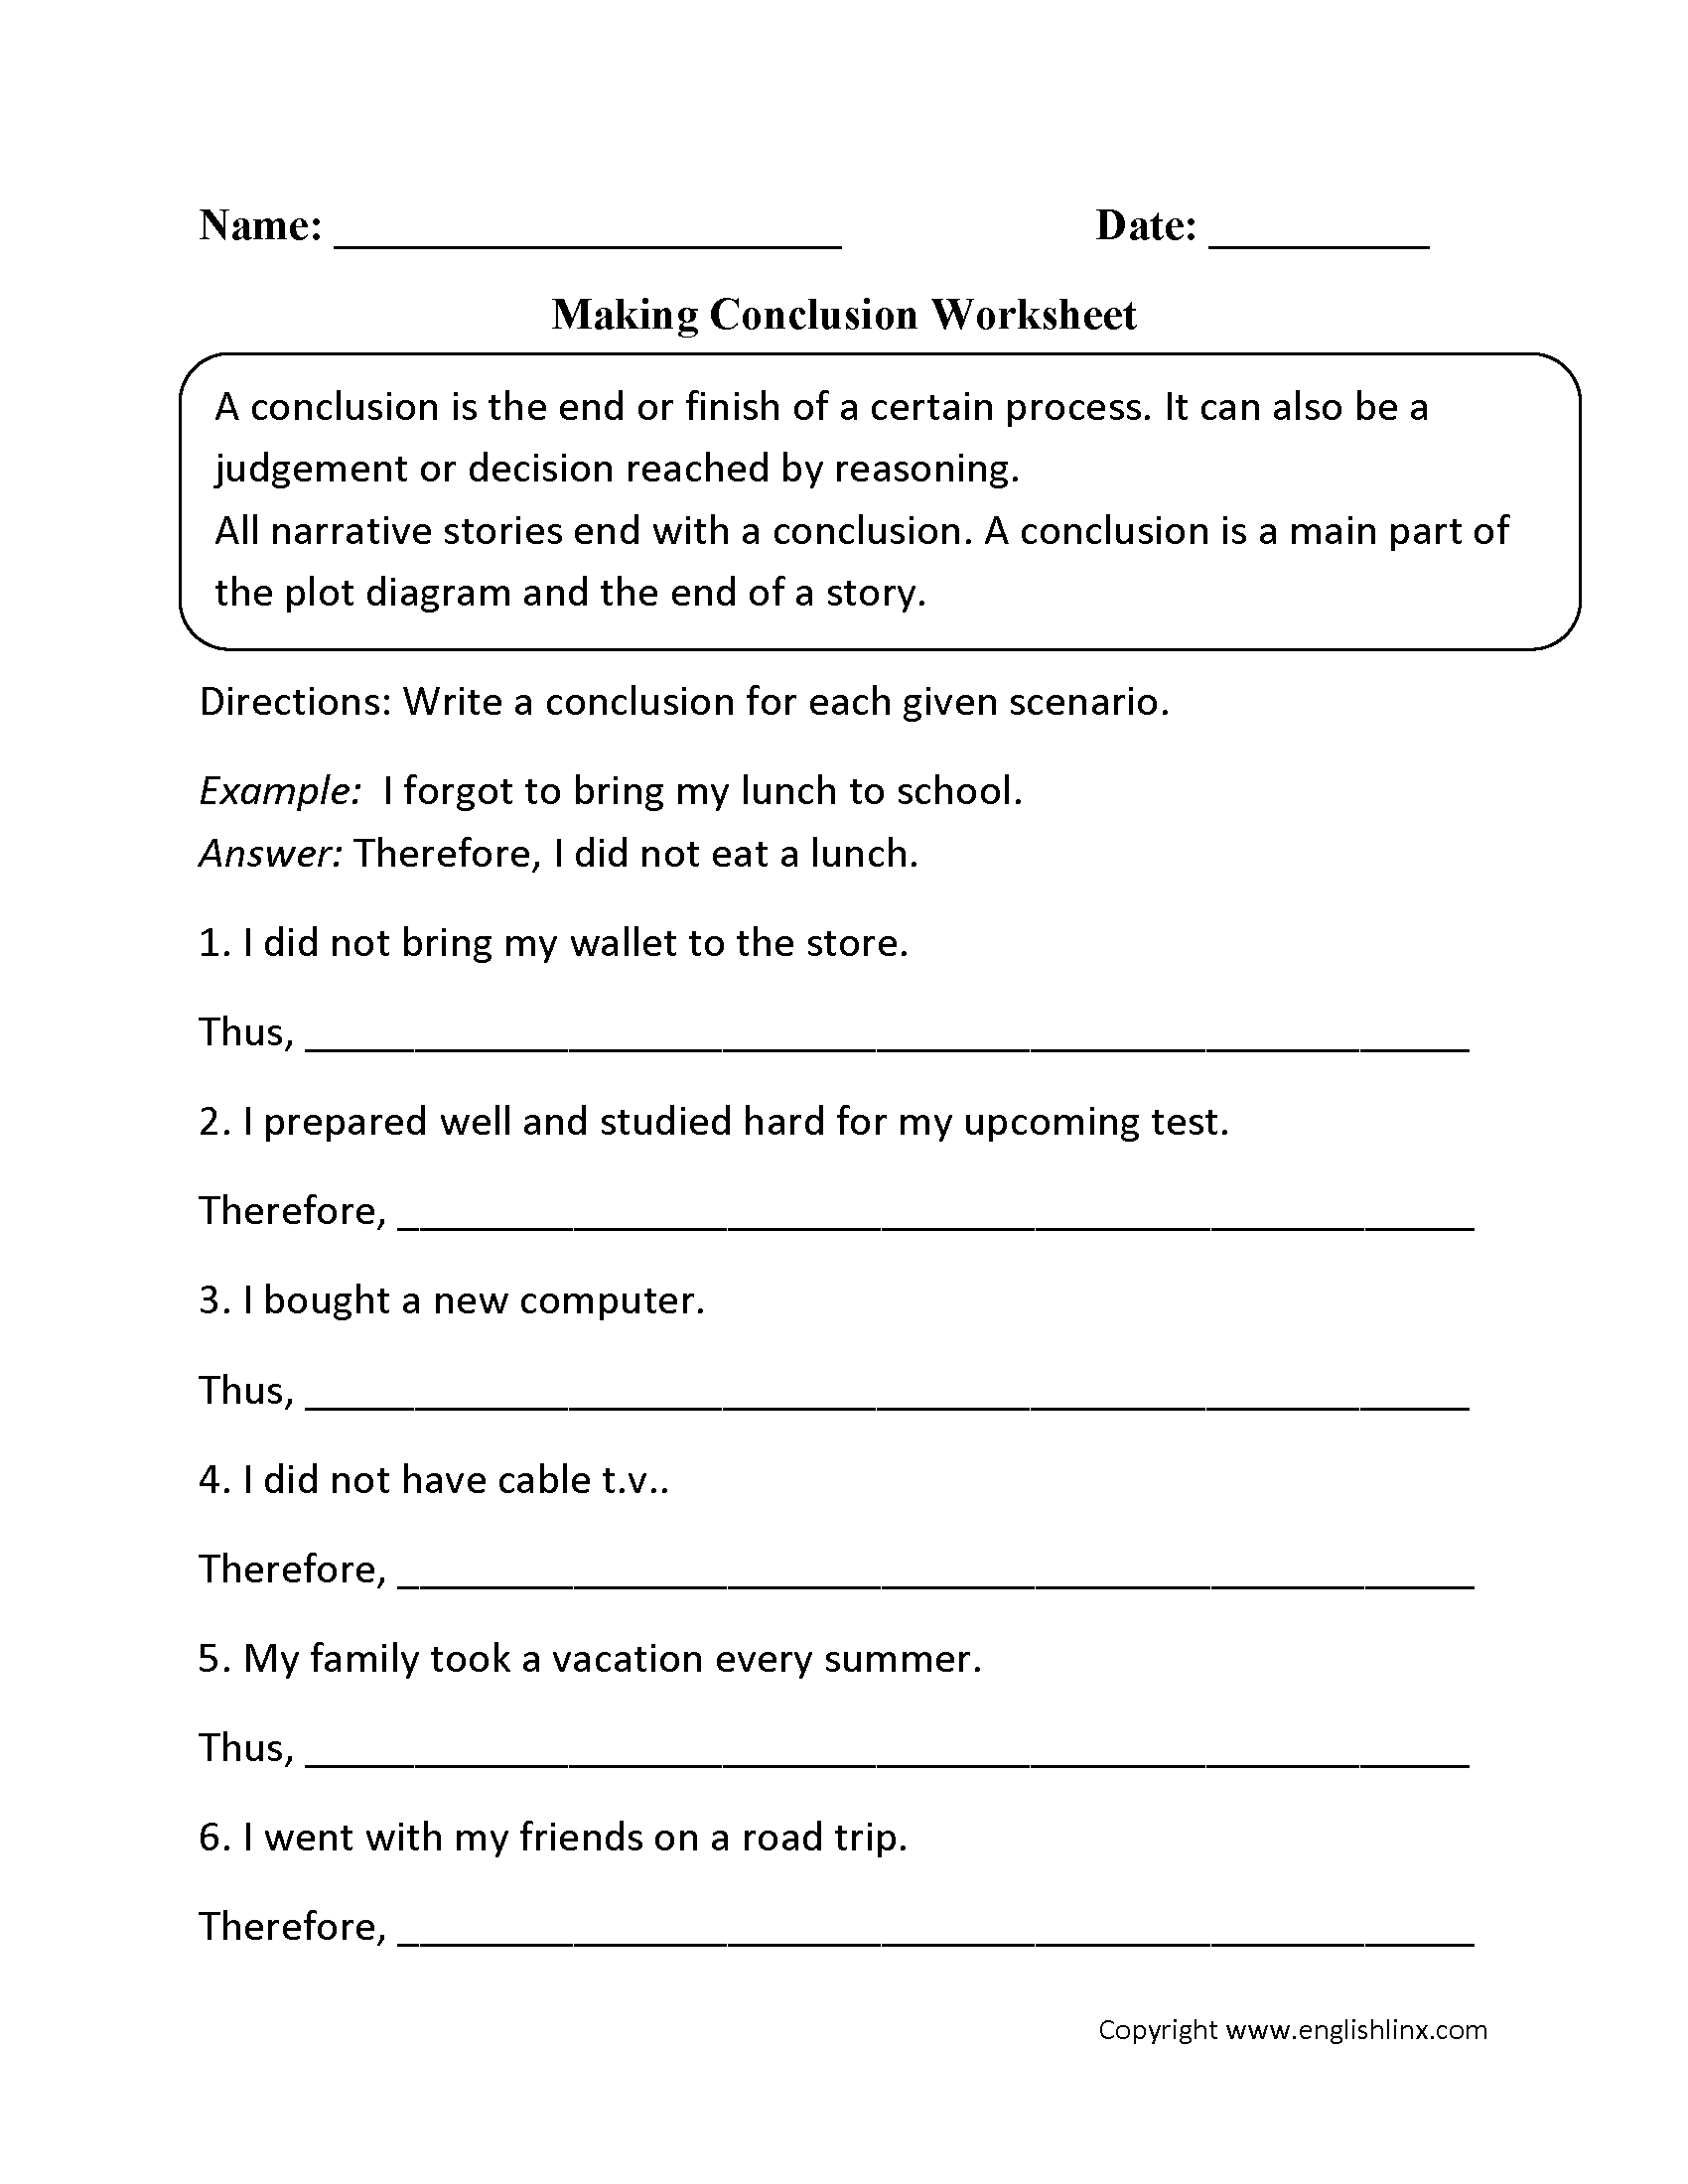 writing introductions and conclusions worksheets best research example of essay